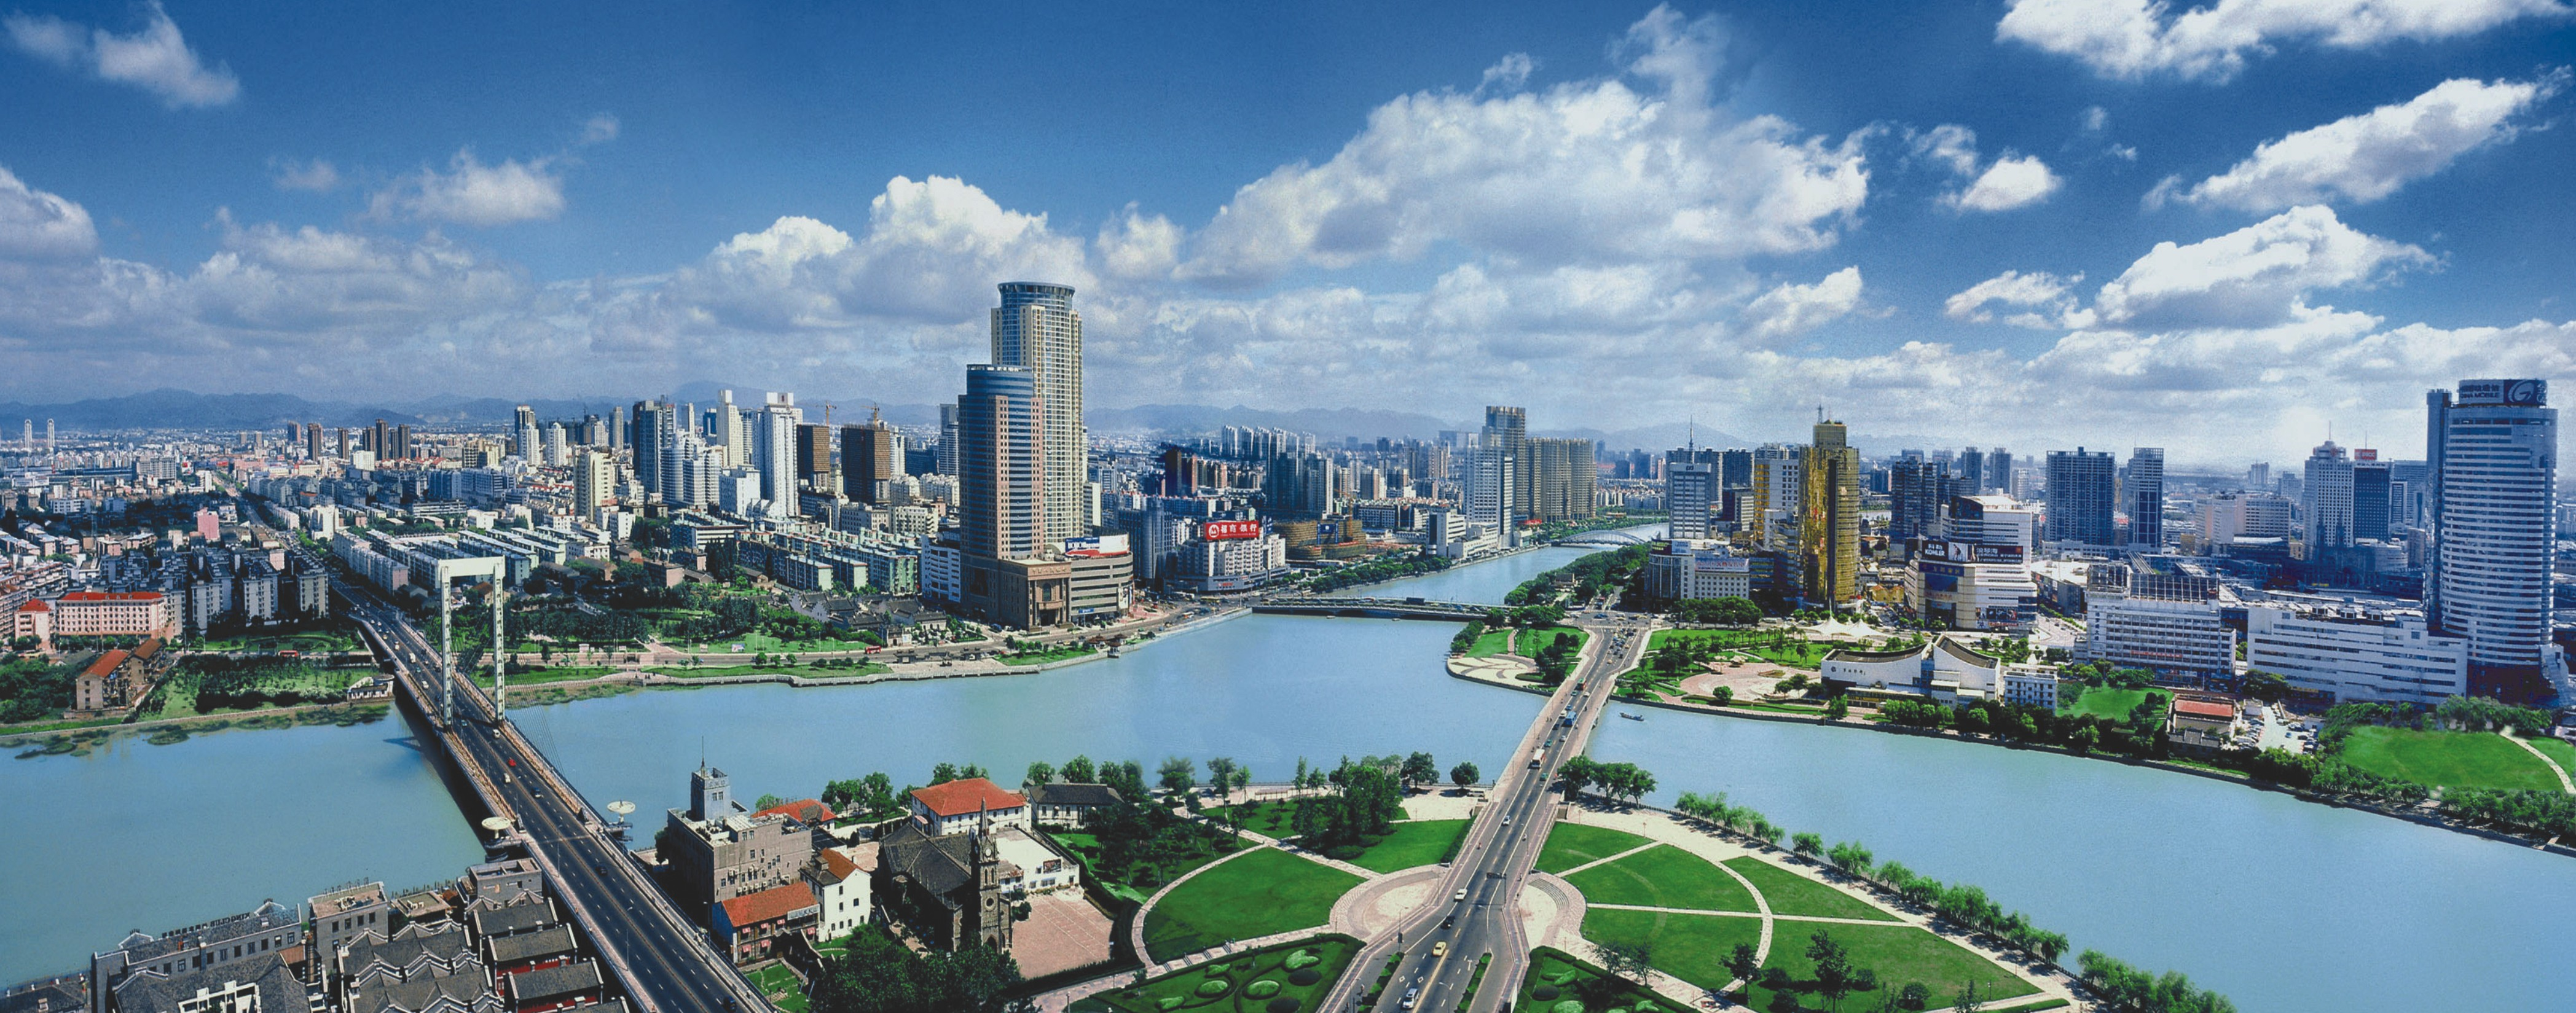 Manufacturing In China City Guide Ningbo China 2 West